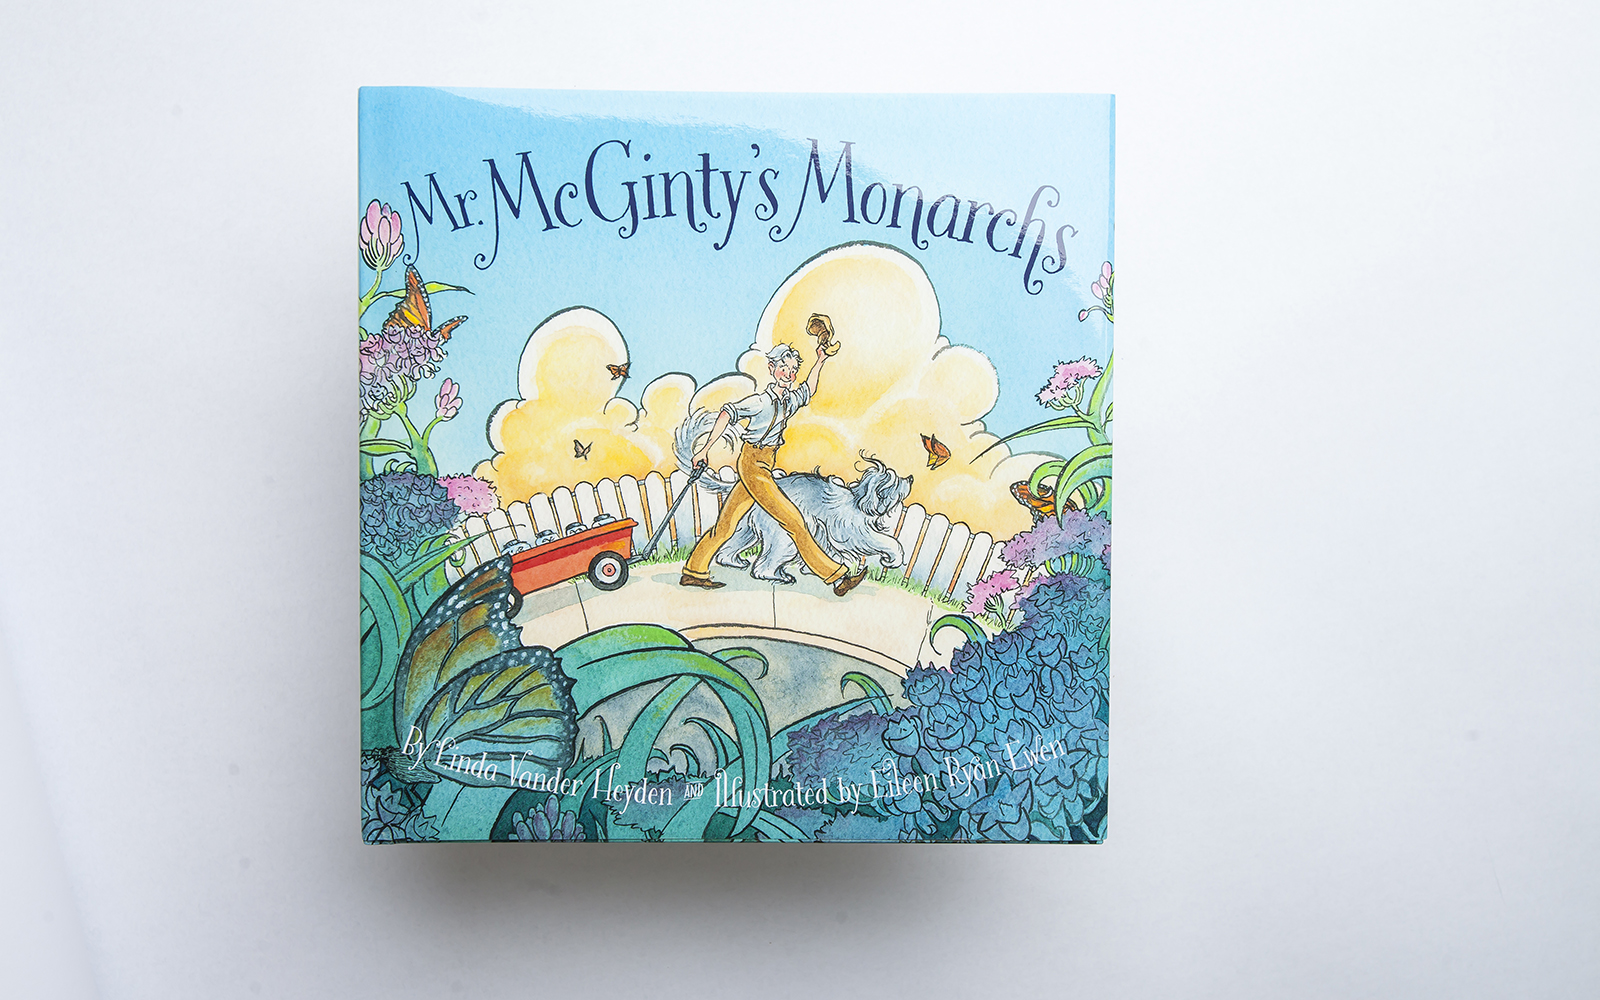 SONWA book Mr. McGinty's Monarchs